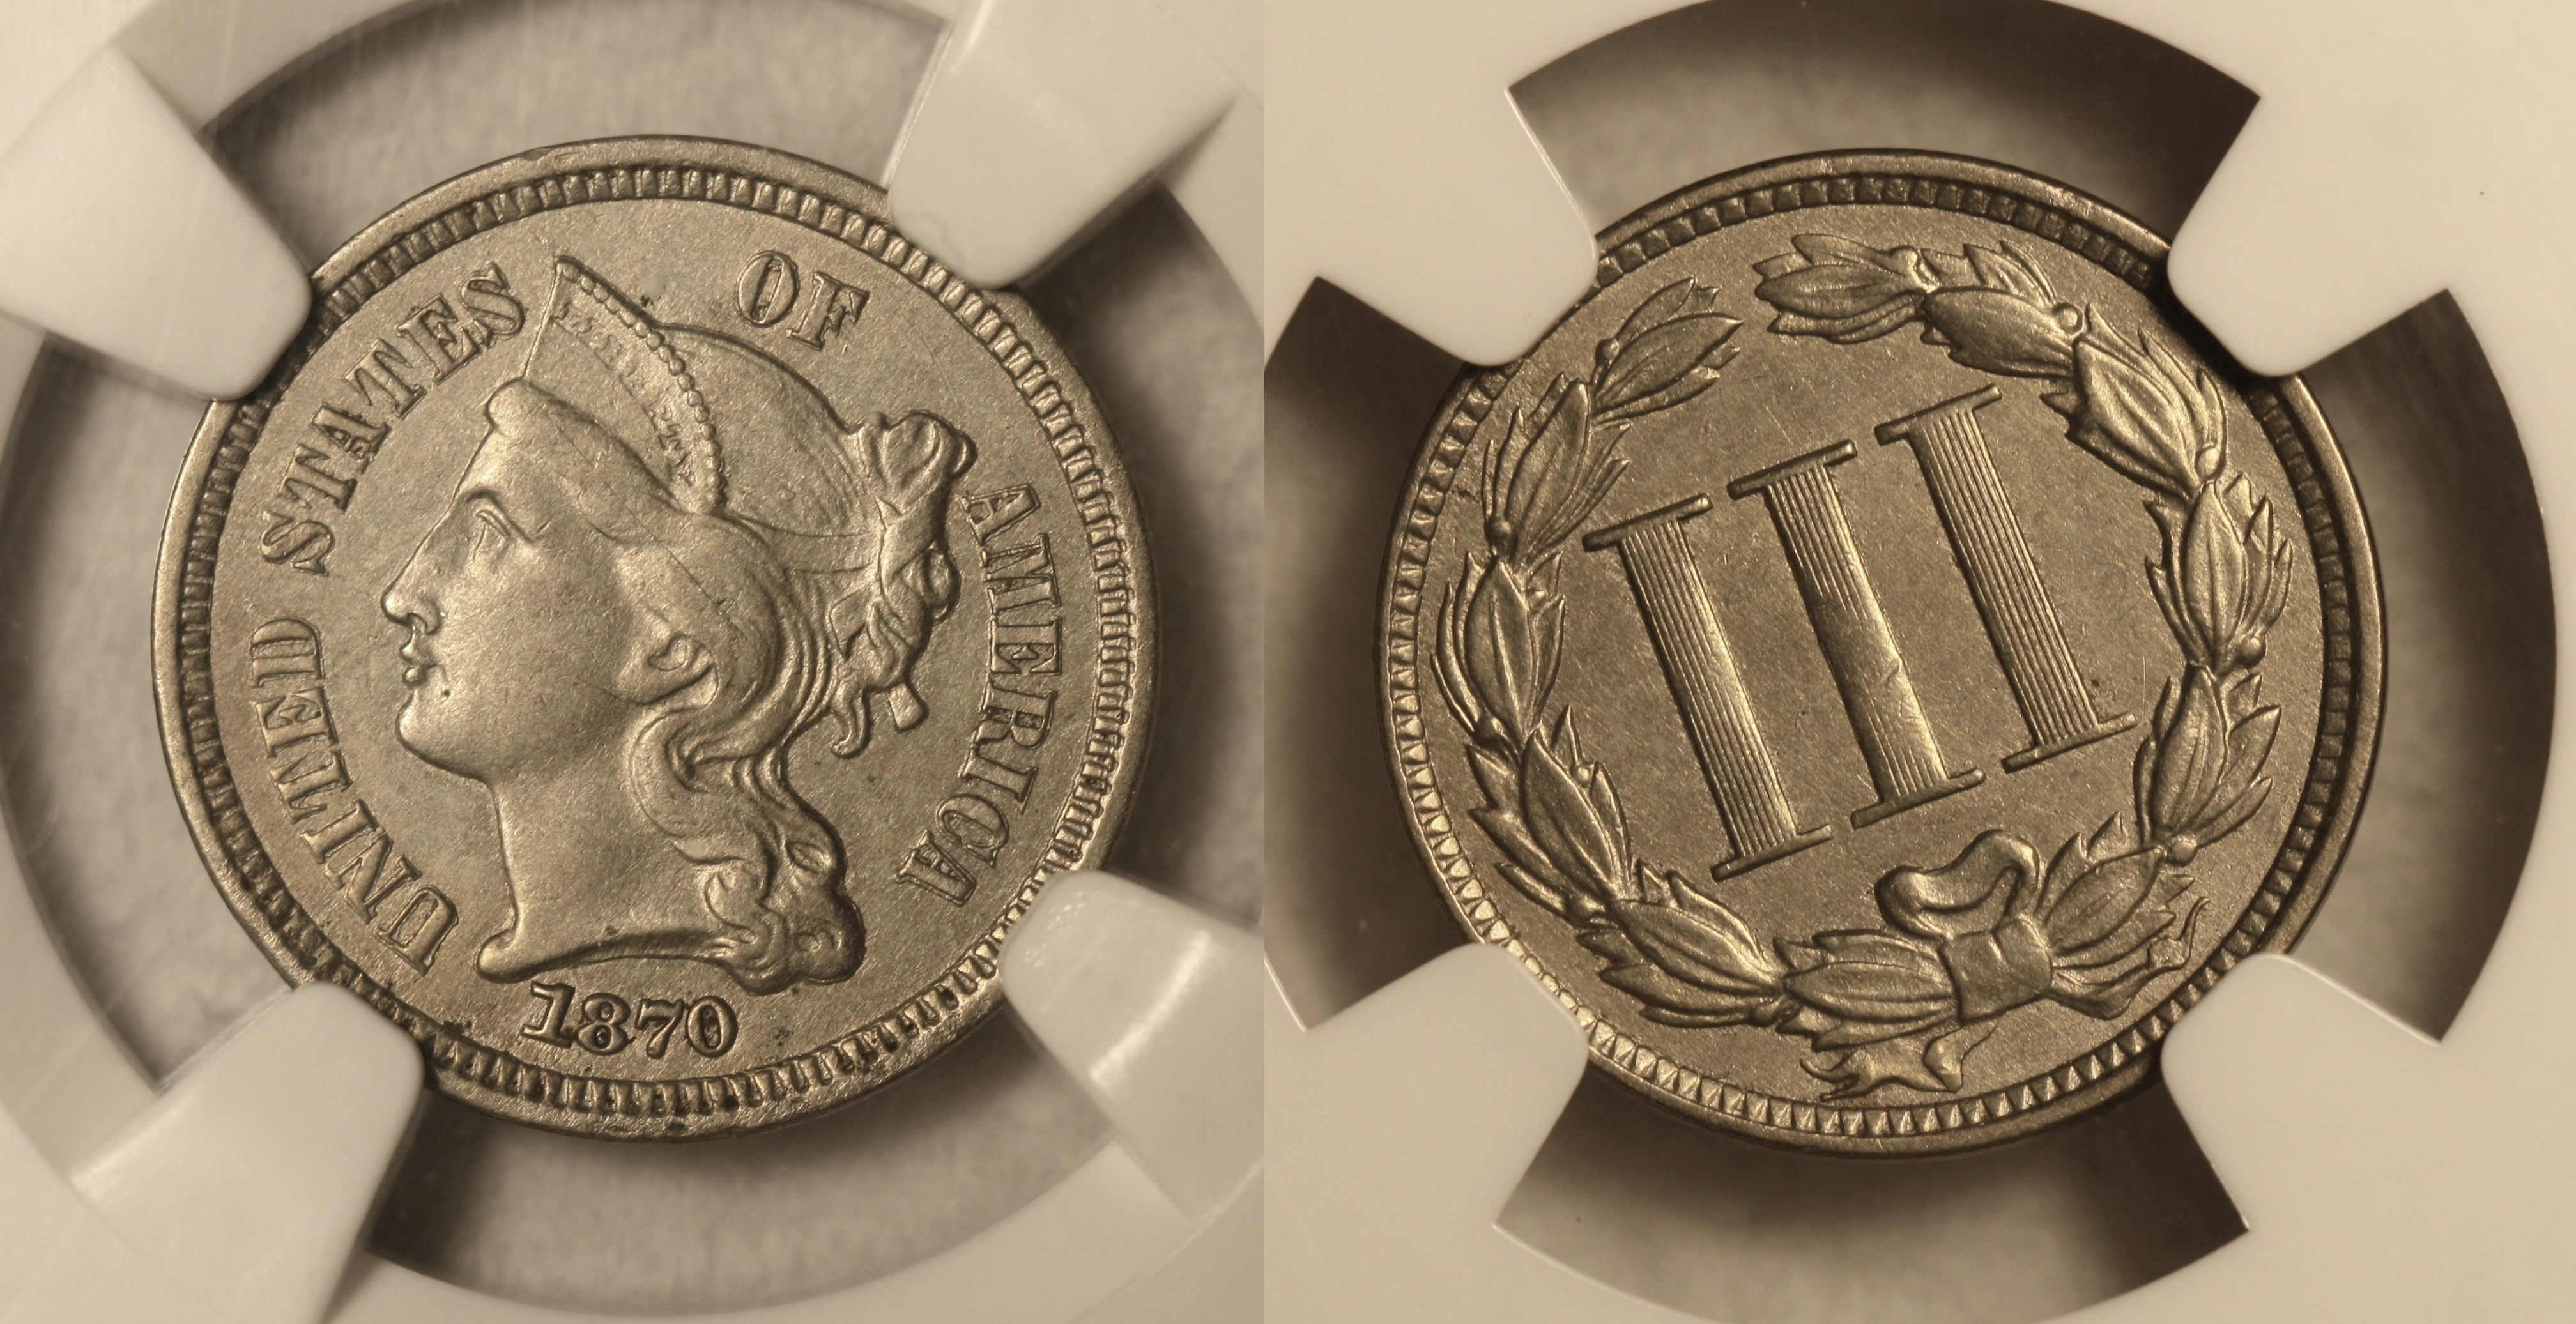 1870 Three Cent Nickel NGC AU-58 camera